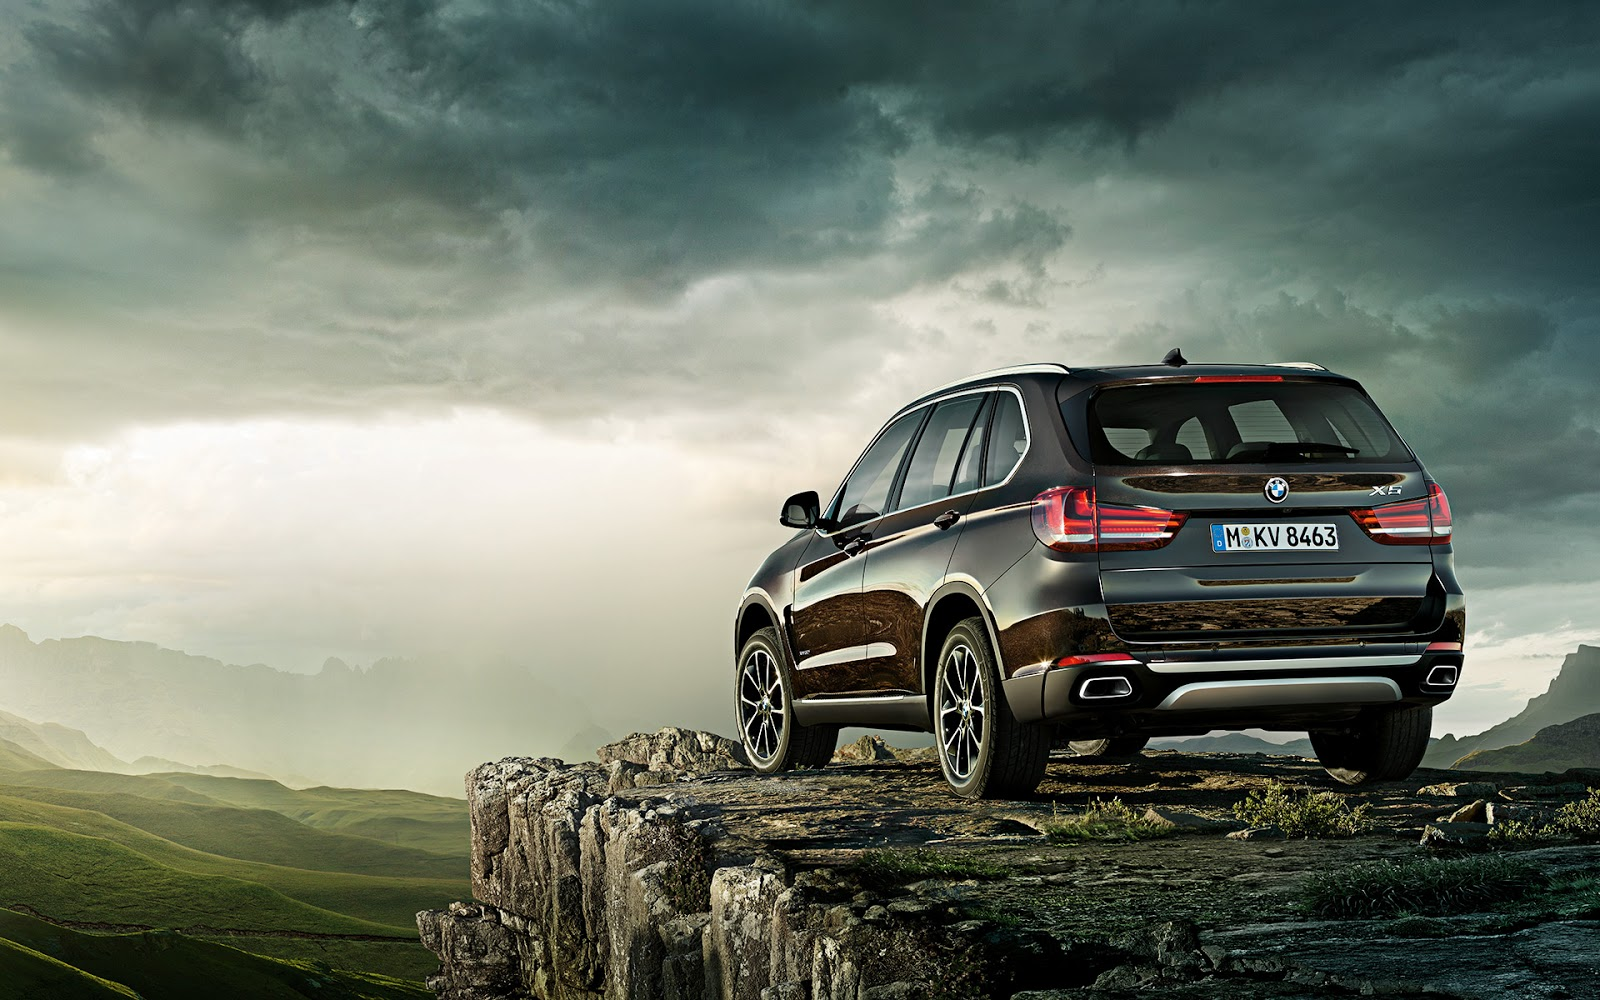 f15 2014 bmw x5 wallpapers and video town country bmw. Black Bedroom Furniture Sets. Home Design Ideas